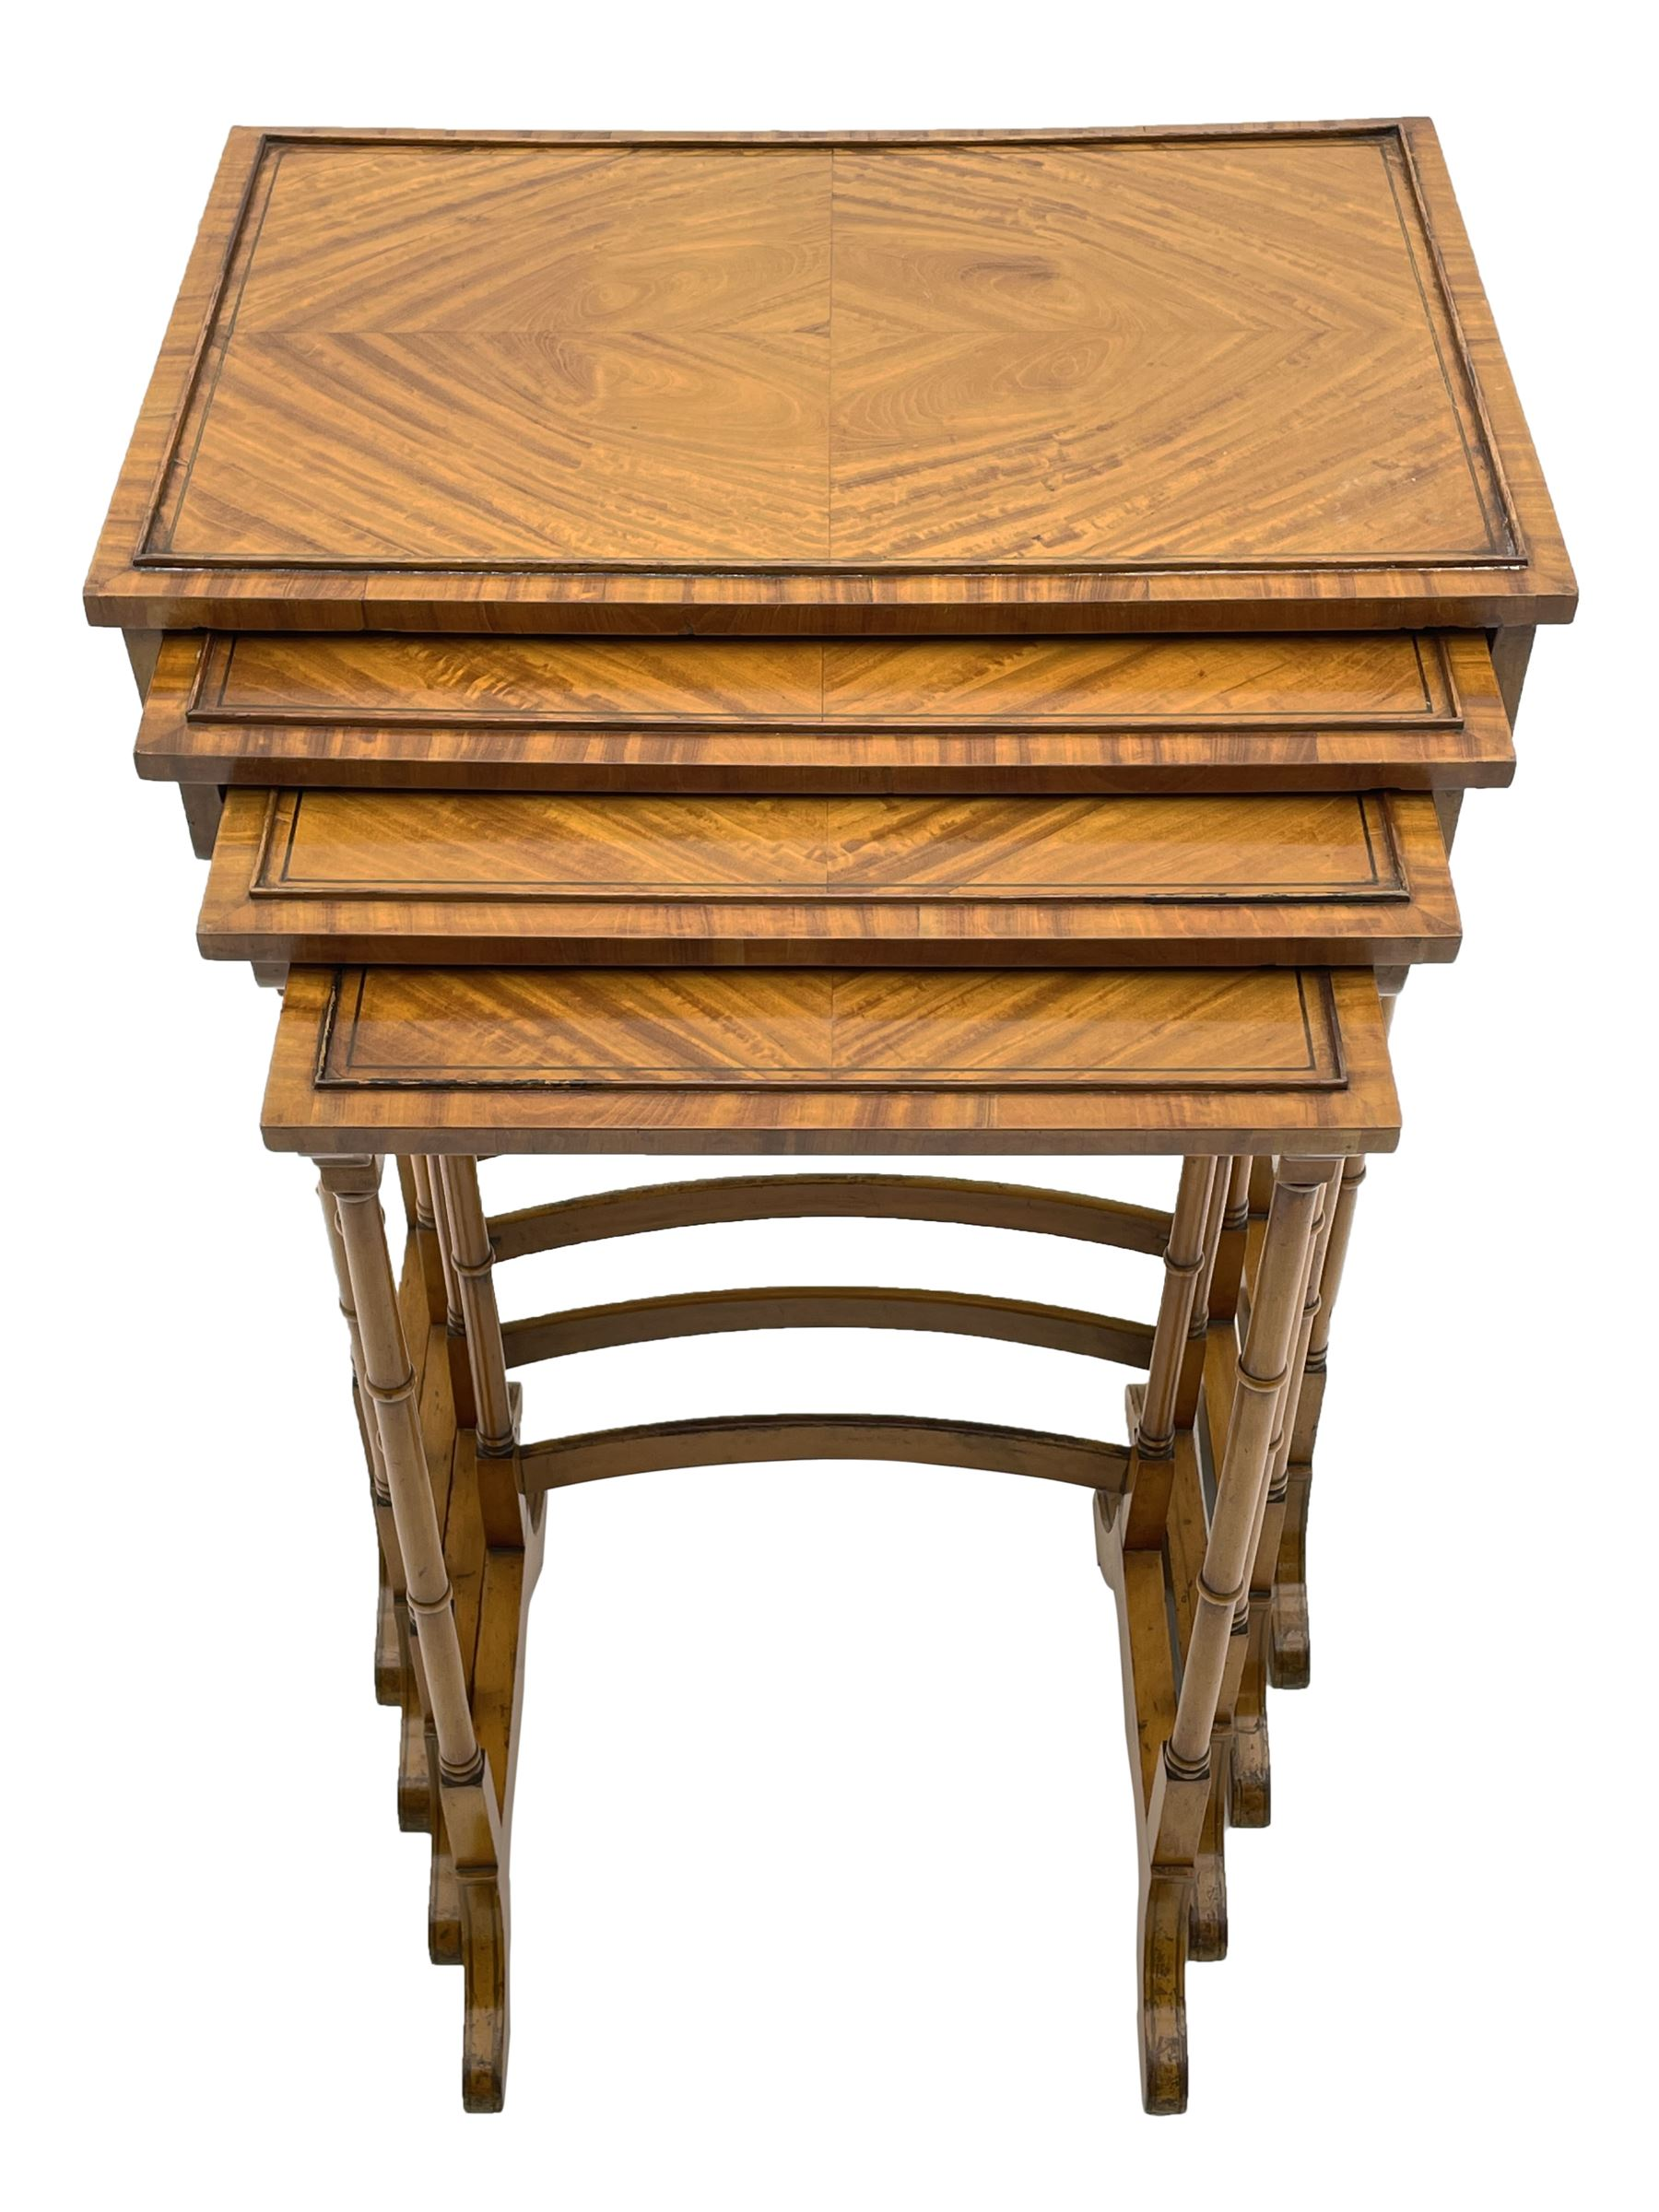 Edwardian satinwood quartetto nest of occasional tables